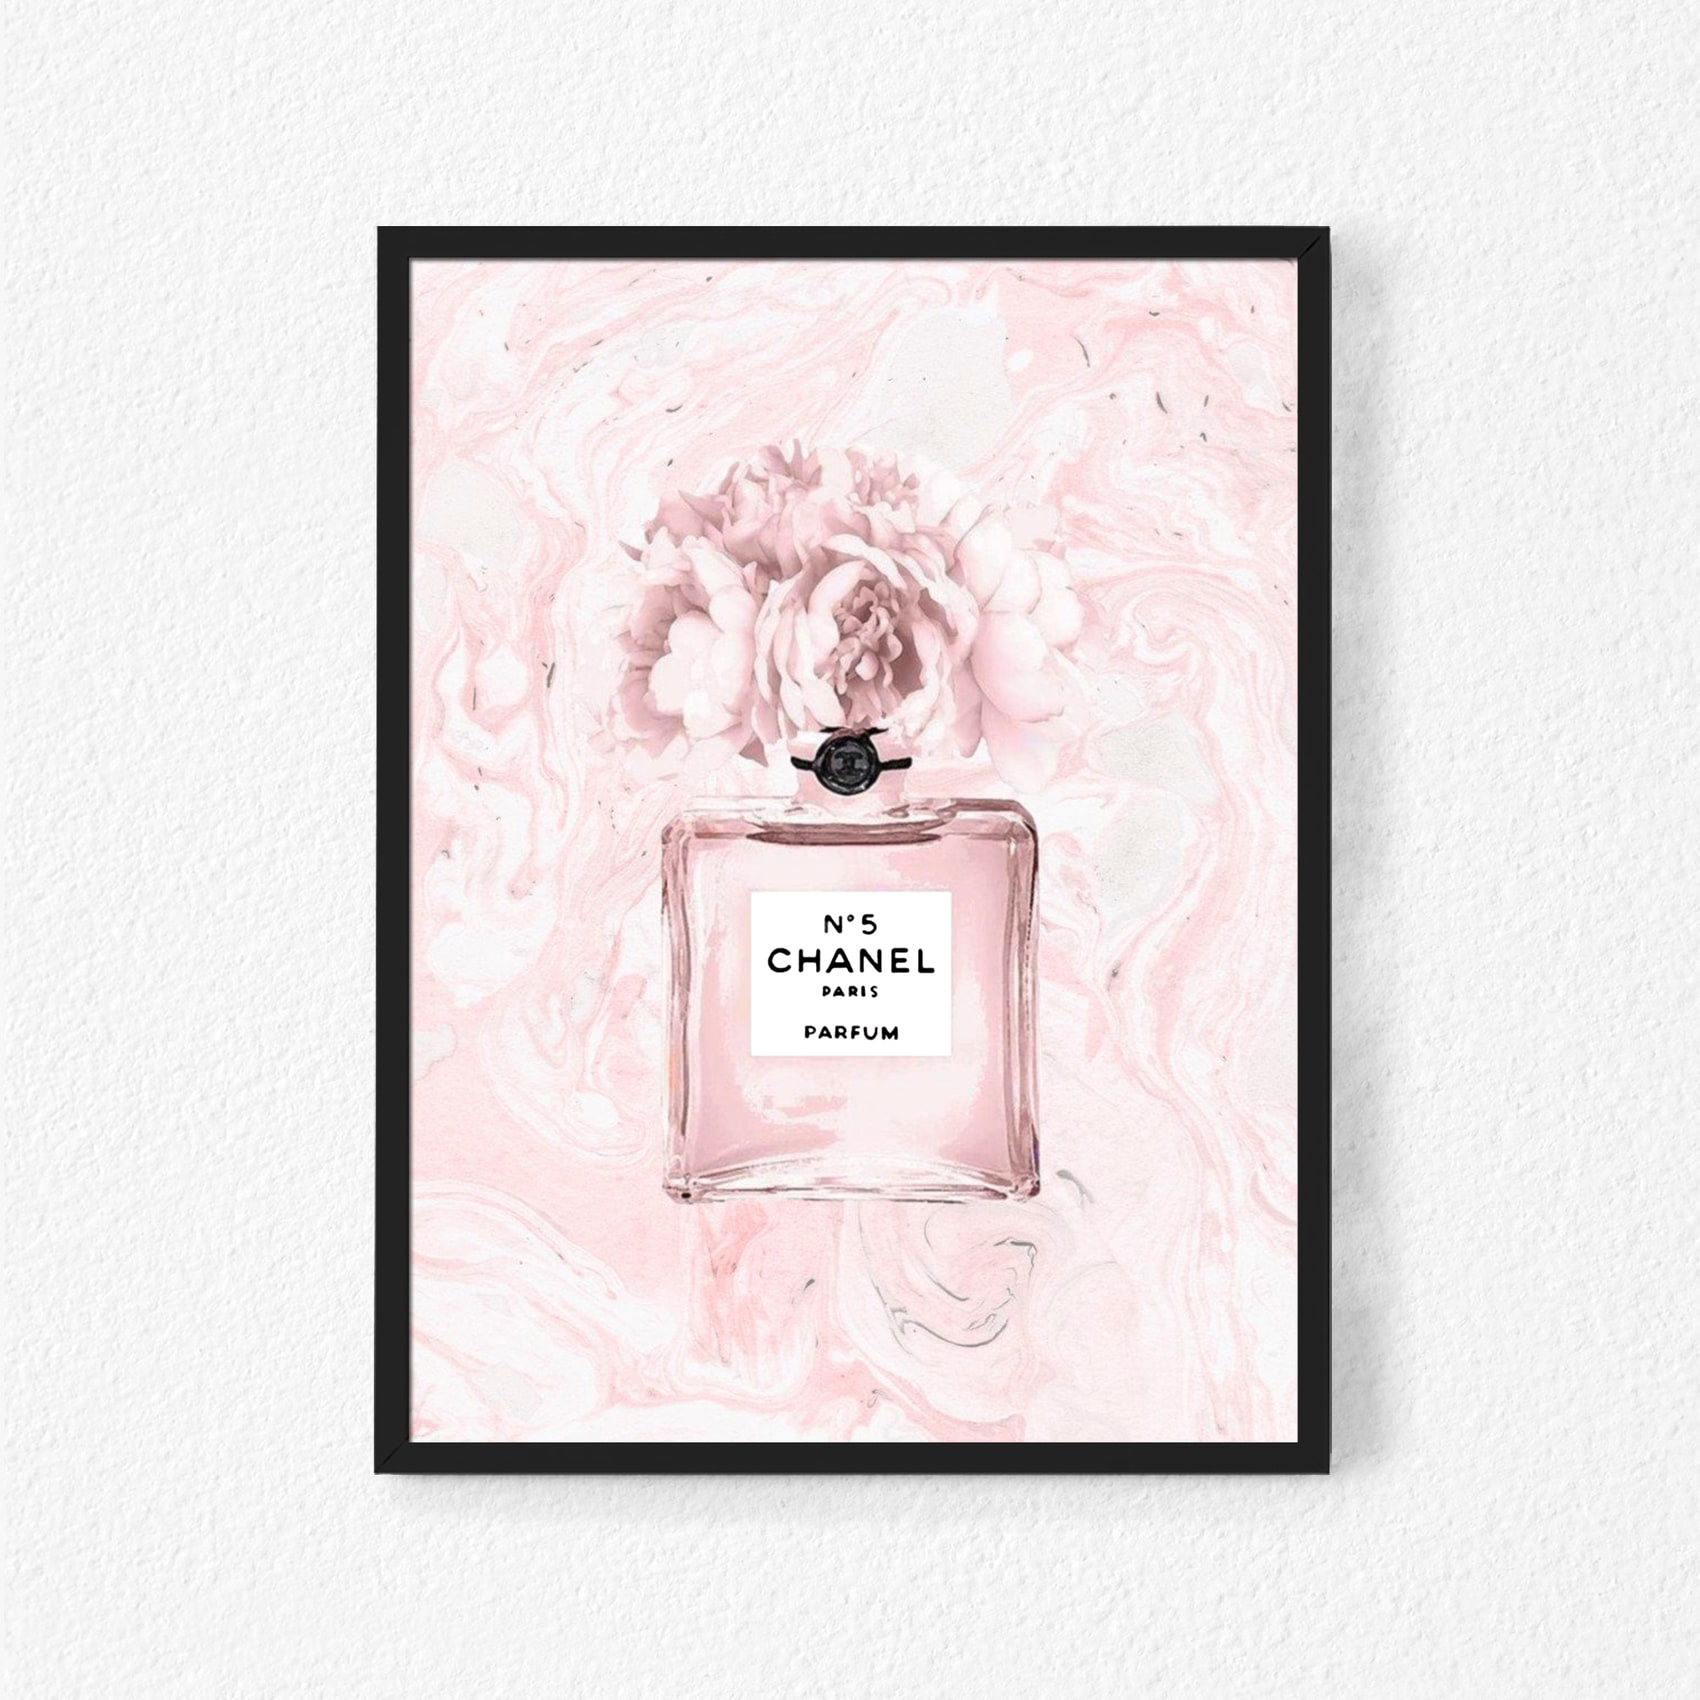 buy boomah accessories coco chanel n5 perfume poster with frame 50x40cm online shop home garden on carrefour uae